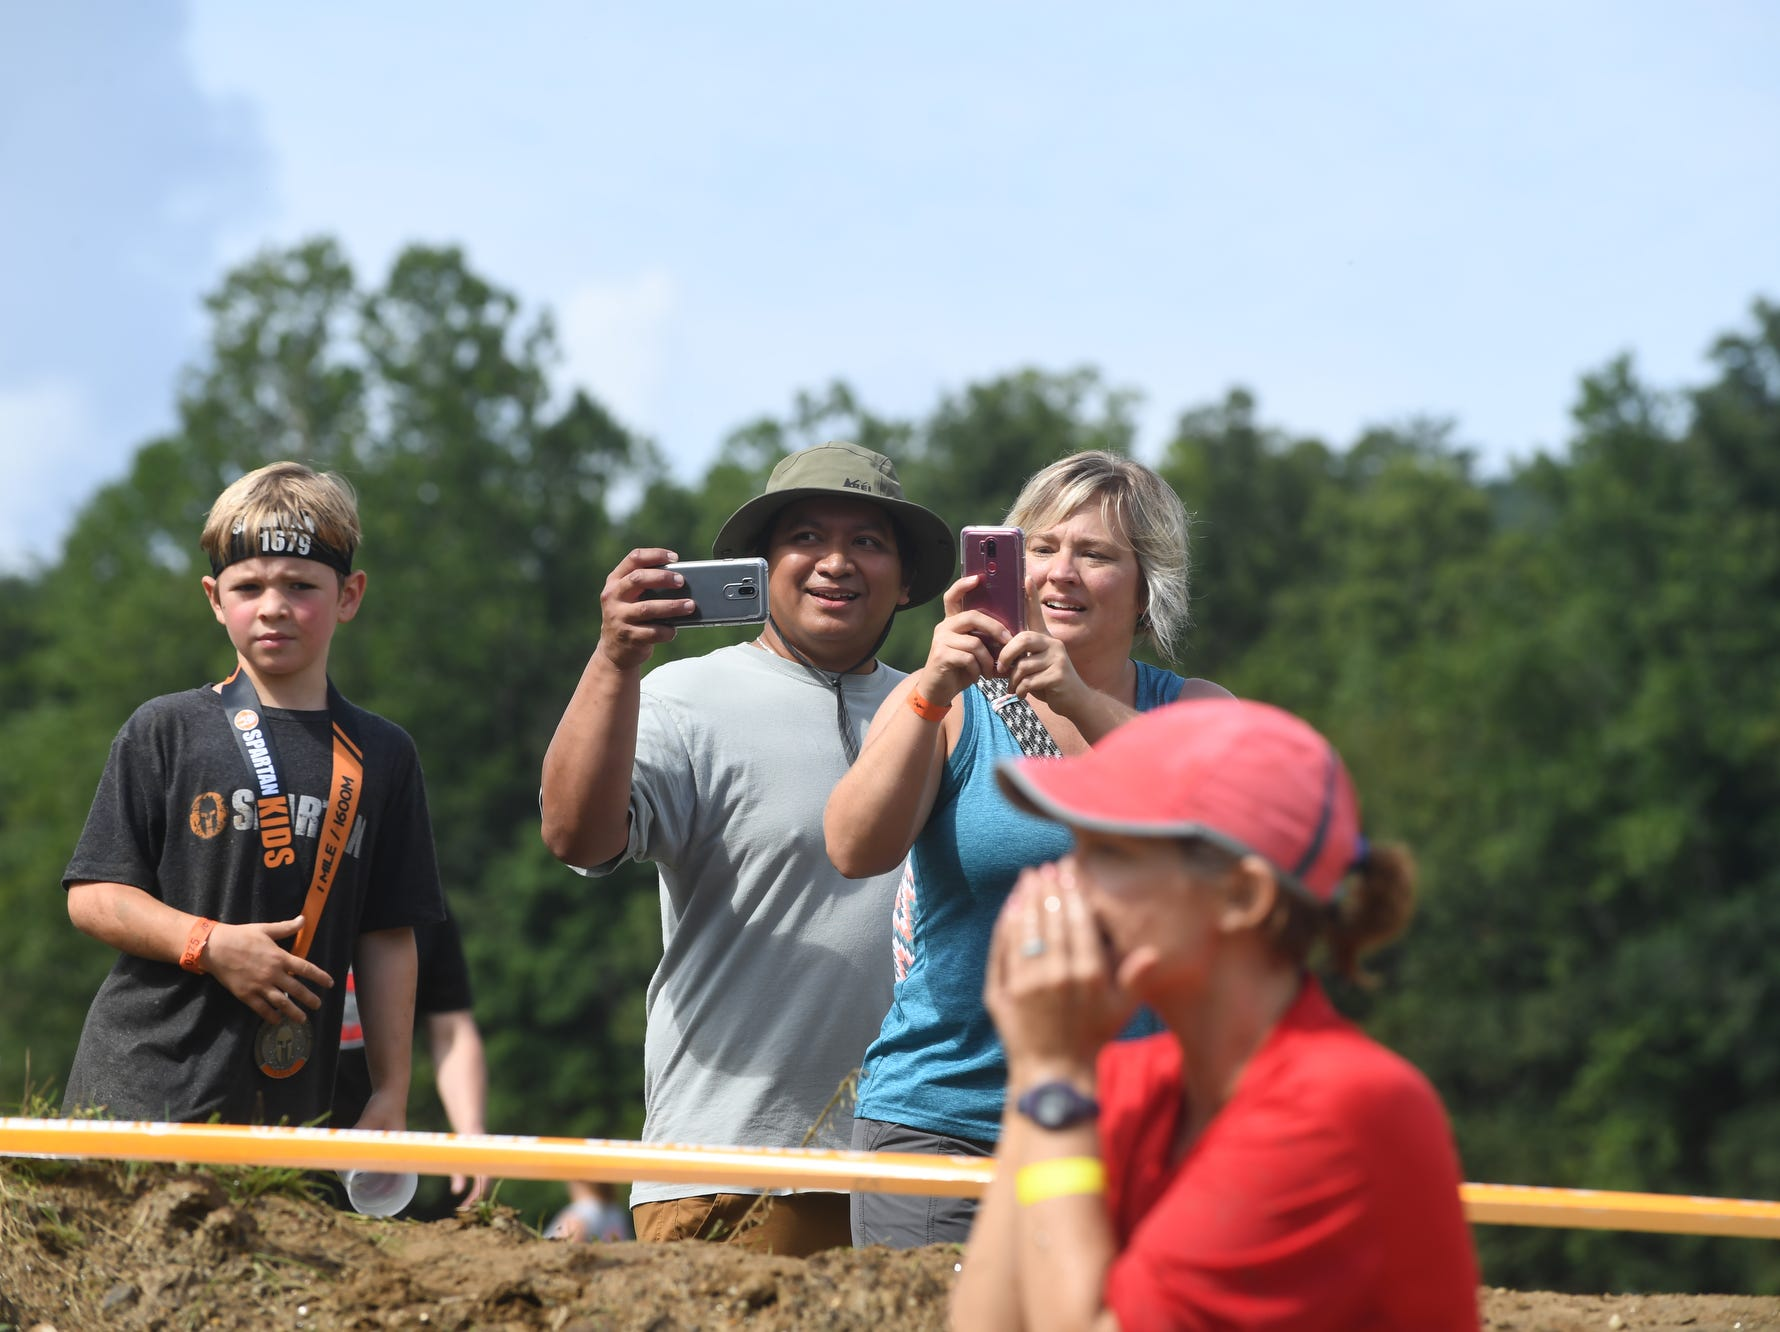 Every 15 minutes, more than 250 racers entered the Spartan obstacle course to test their athleticism in a muddy cow pasture on North Fork Left Fork Road in Black Mountain Saturday.